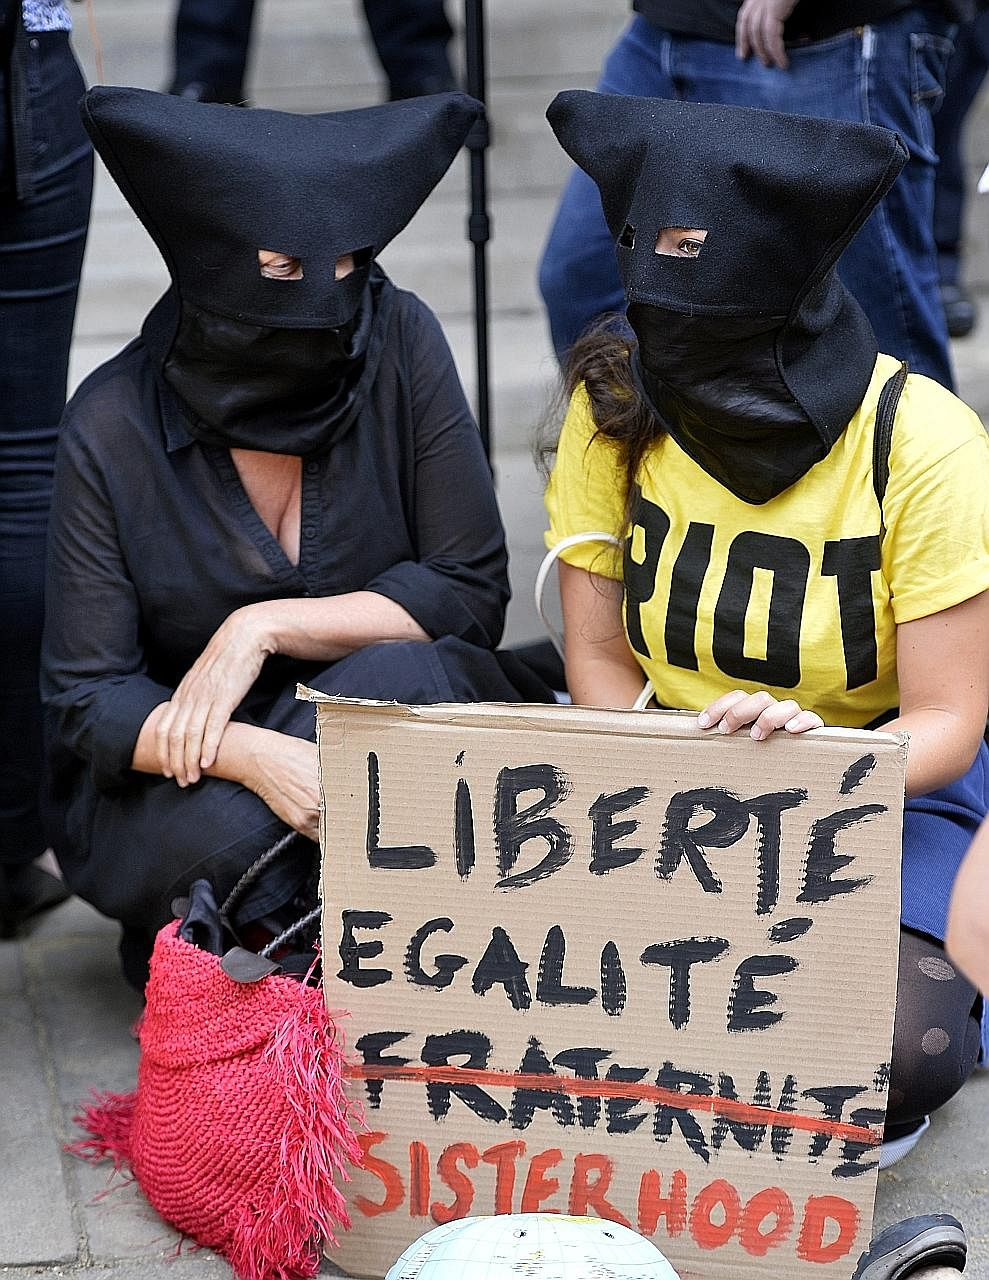 Participants of the Wear What You Want Beach Party protest outside the French Embassy in London. The protest against the burkini ban was held to show solidarity with Muslim women in France.